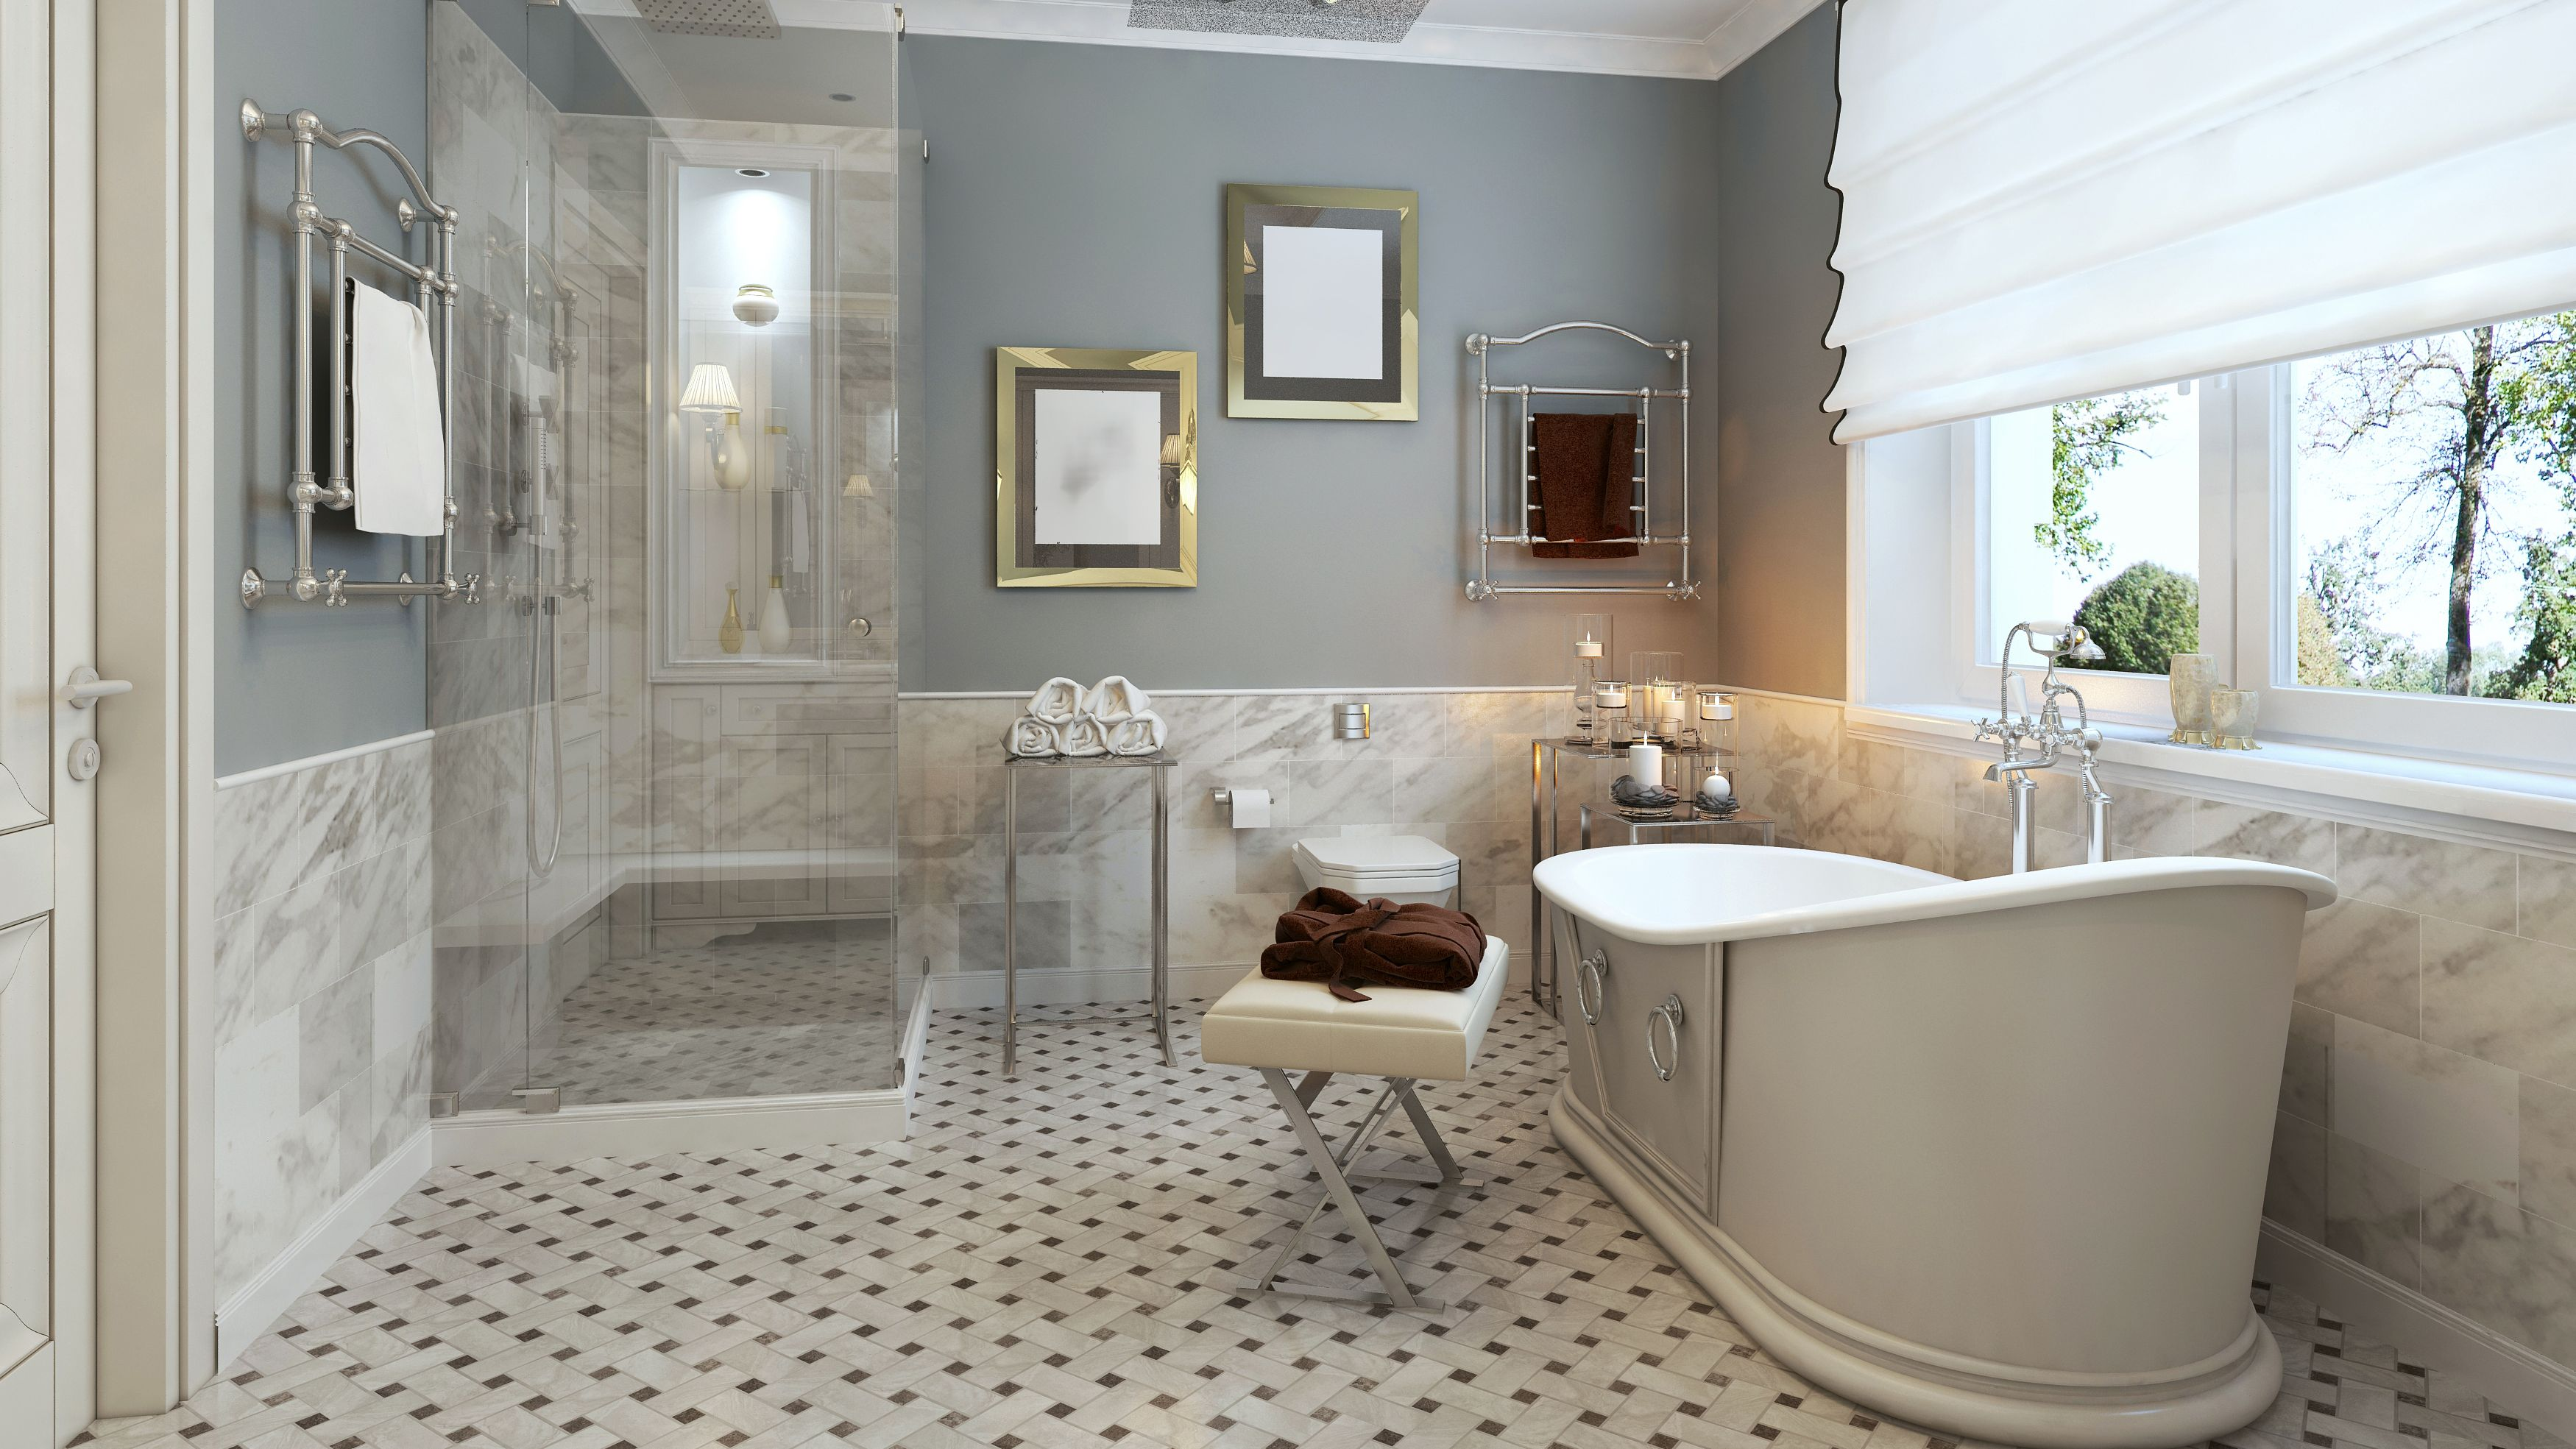 French Country Bathroom Design Ideas, French Country Bathroom Faucets